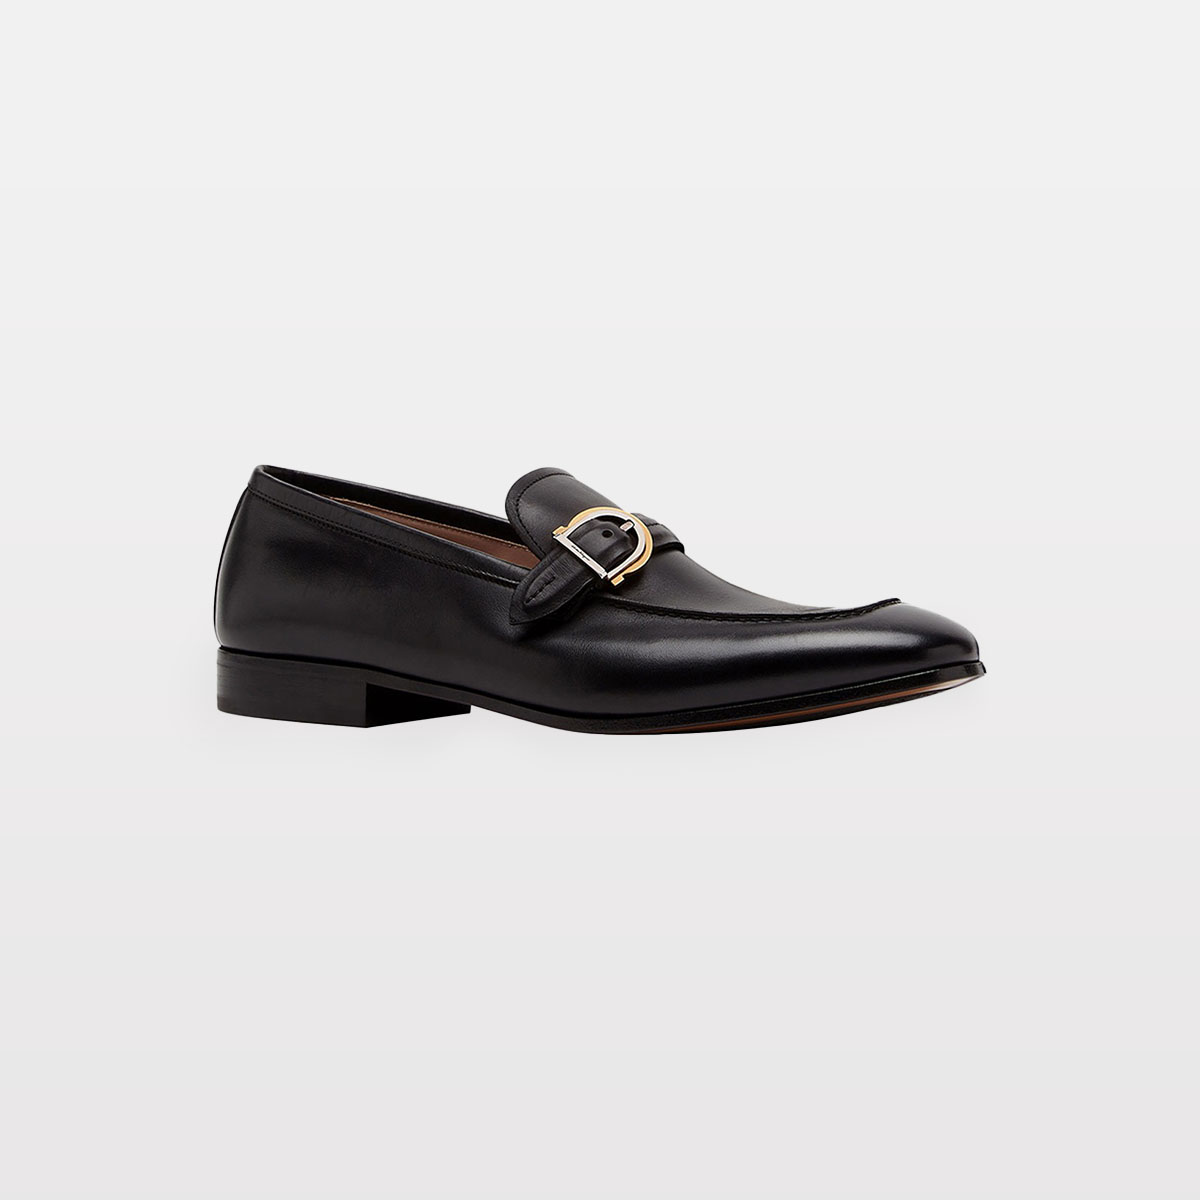 Salvatore Ferragamo Men's Portland Leather Loafers w/ Gancio Buckle